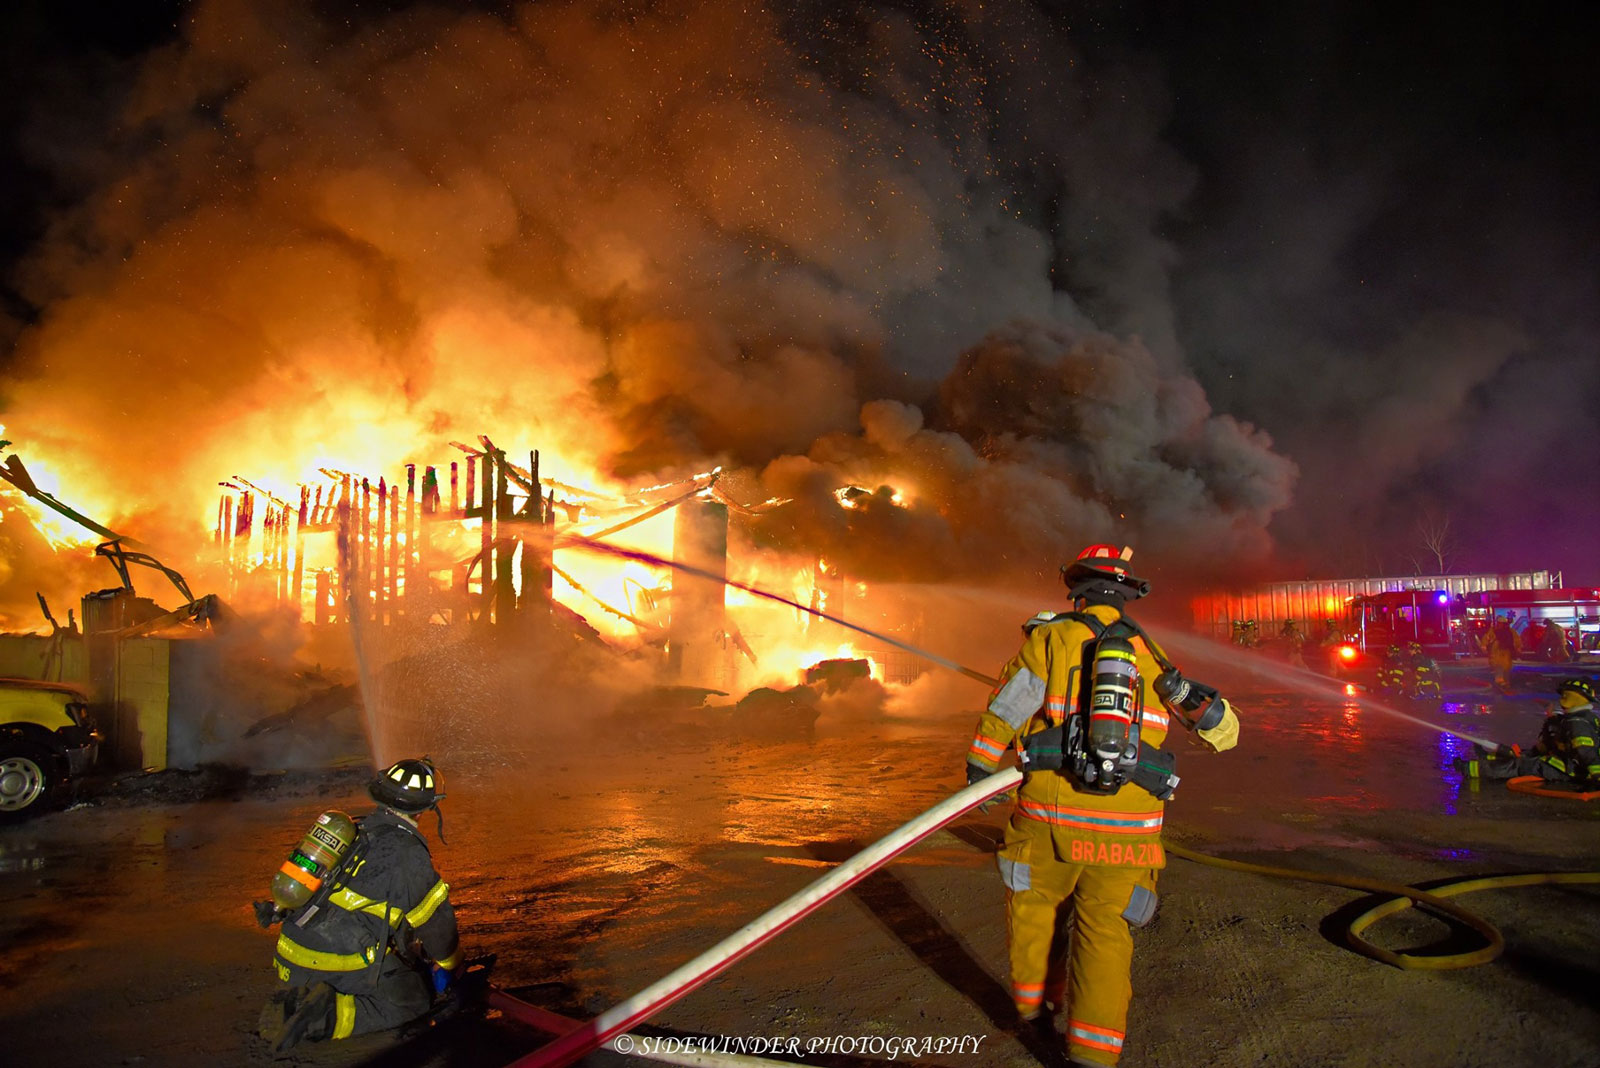 Another view of multiple streams being directed towards the building